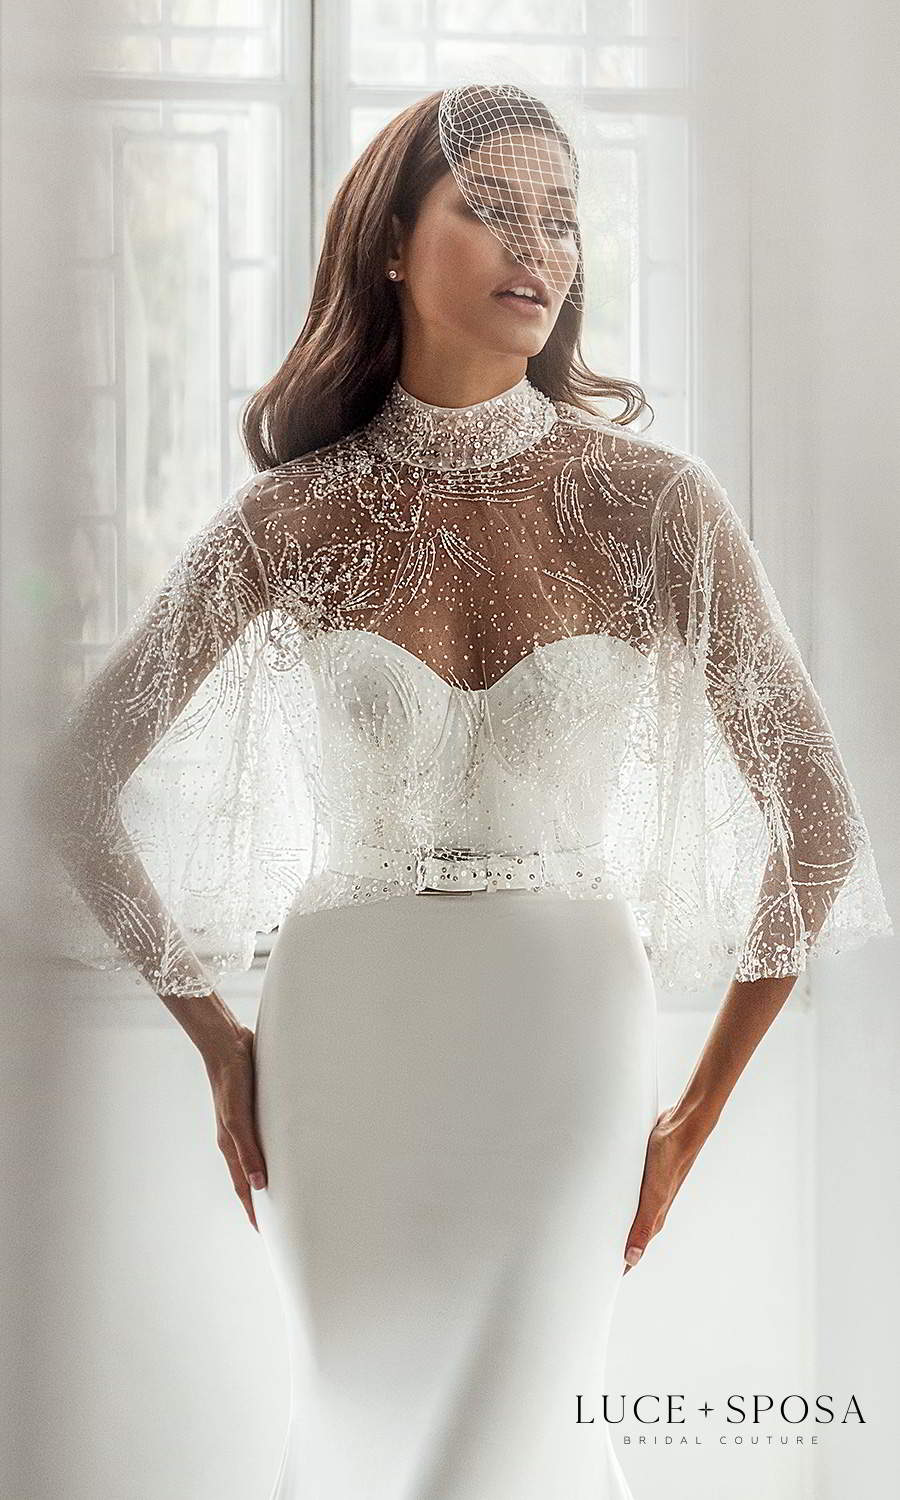 luce sposa 2021 shades of couture bridal strapless sweetheart neckline clean minimalist sheath wedding dress cathedral train belt sheer high neck cape (joanna) zv